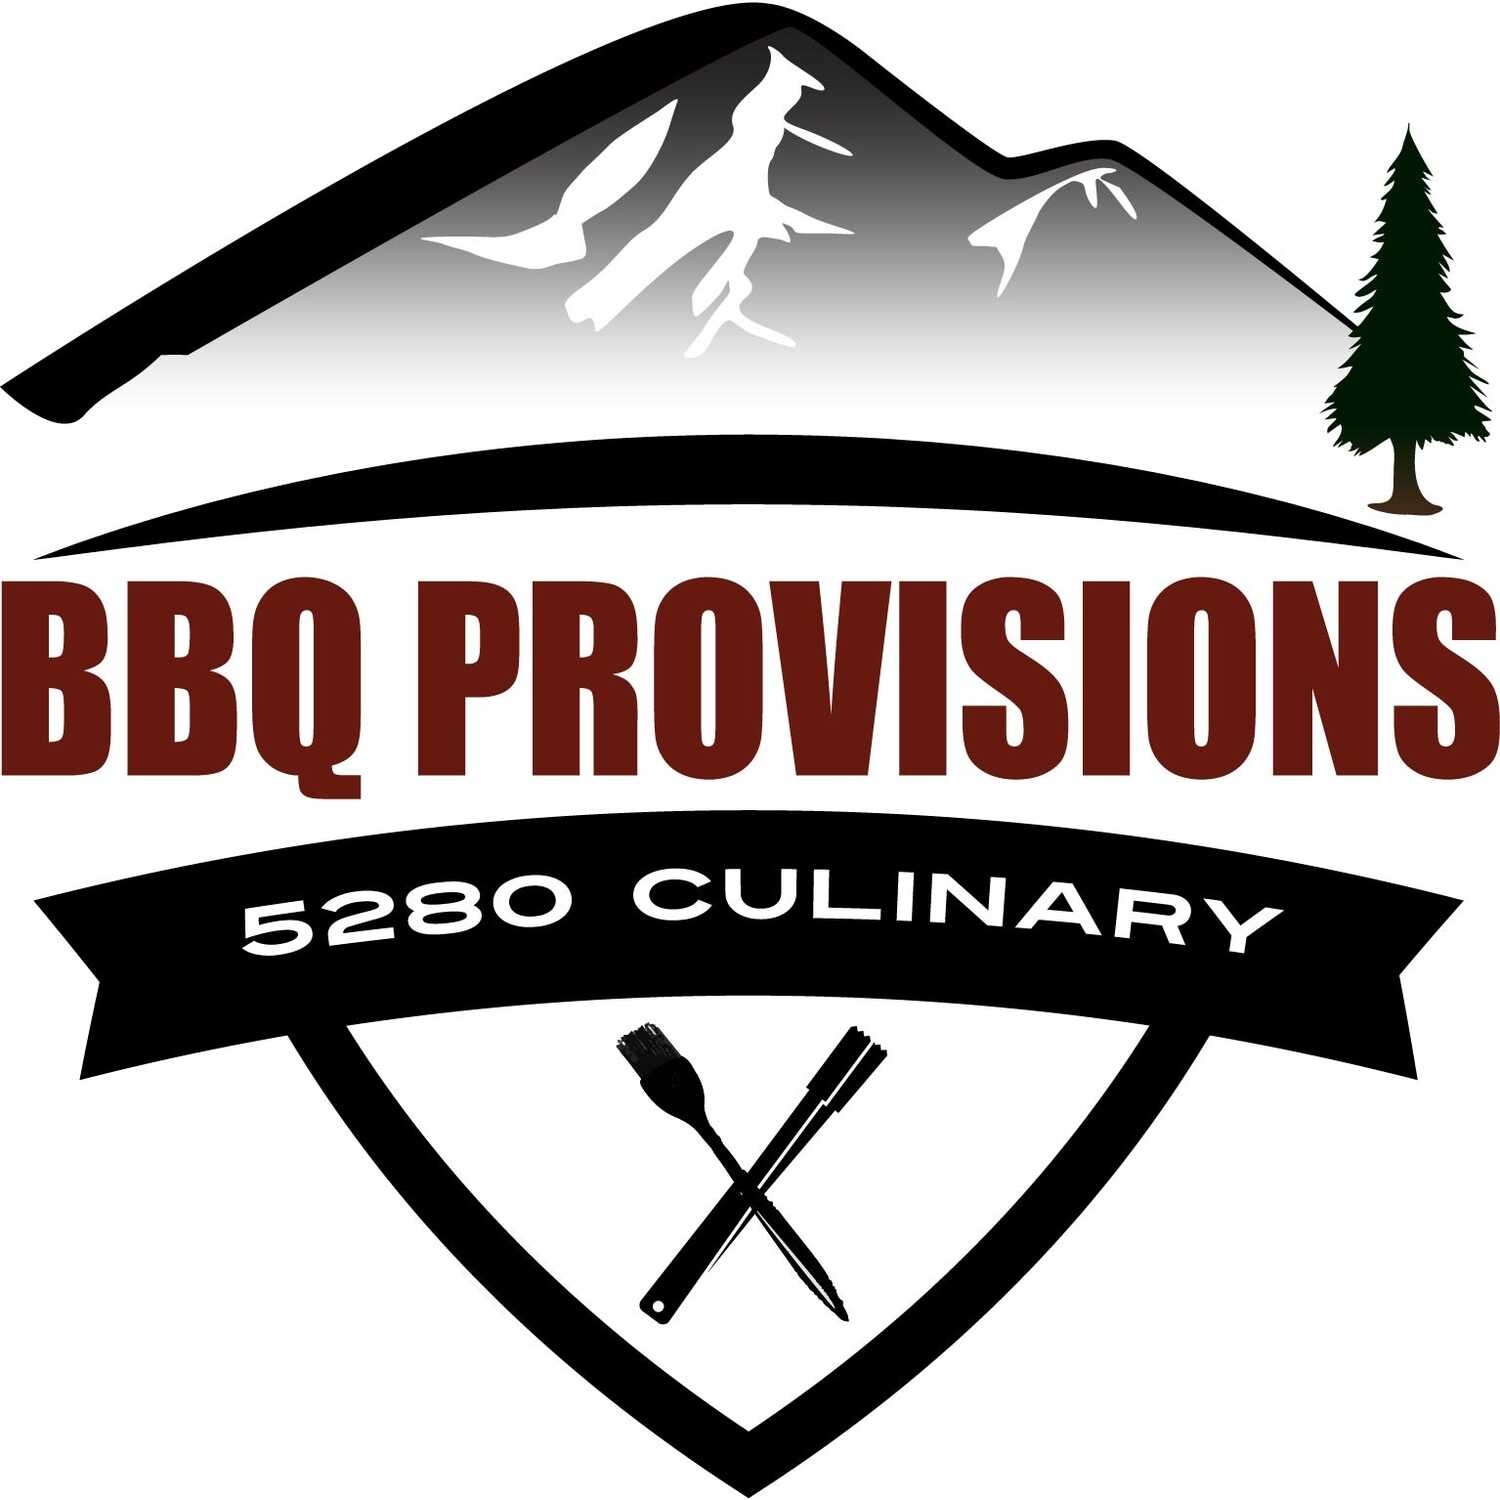 5280 Culinary  BBQ Provisions  Chefs Brine  Seasoning Rub  16 oz.